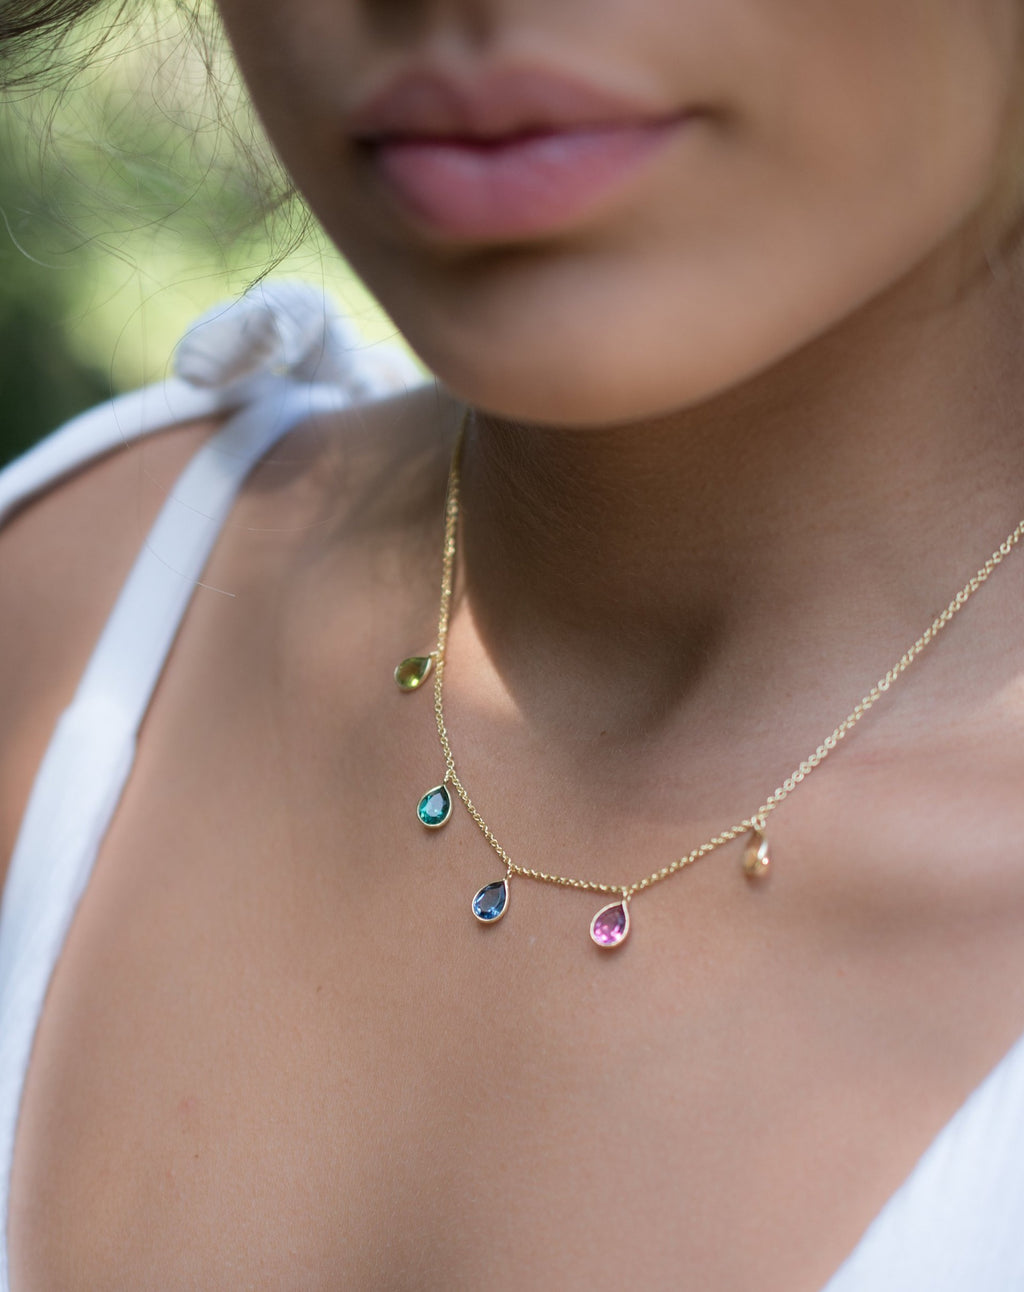 Ava Necklace * Citrine/ Pink and green tourmaline hydro/ Iolite hydro * Gold Plated 18k * BJN041